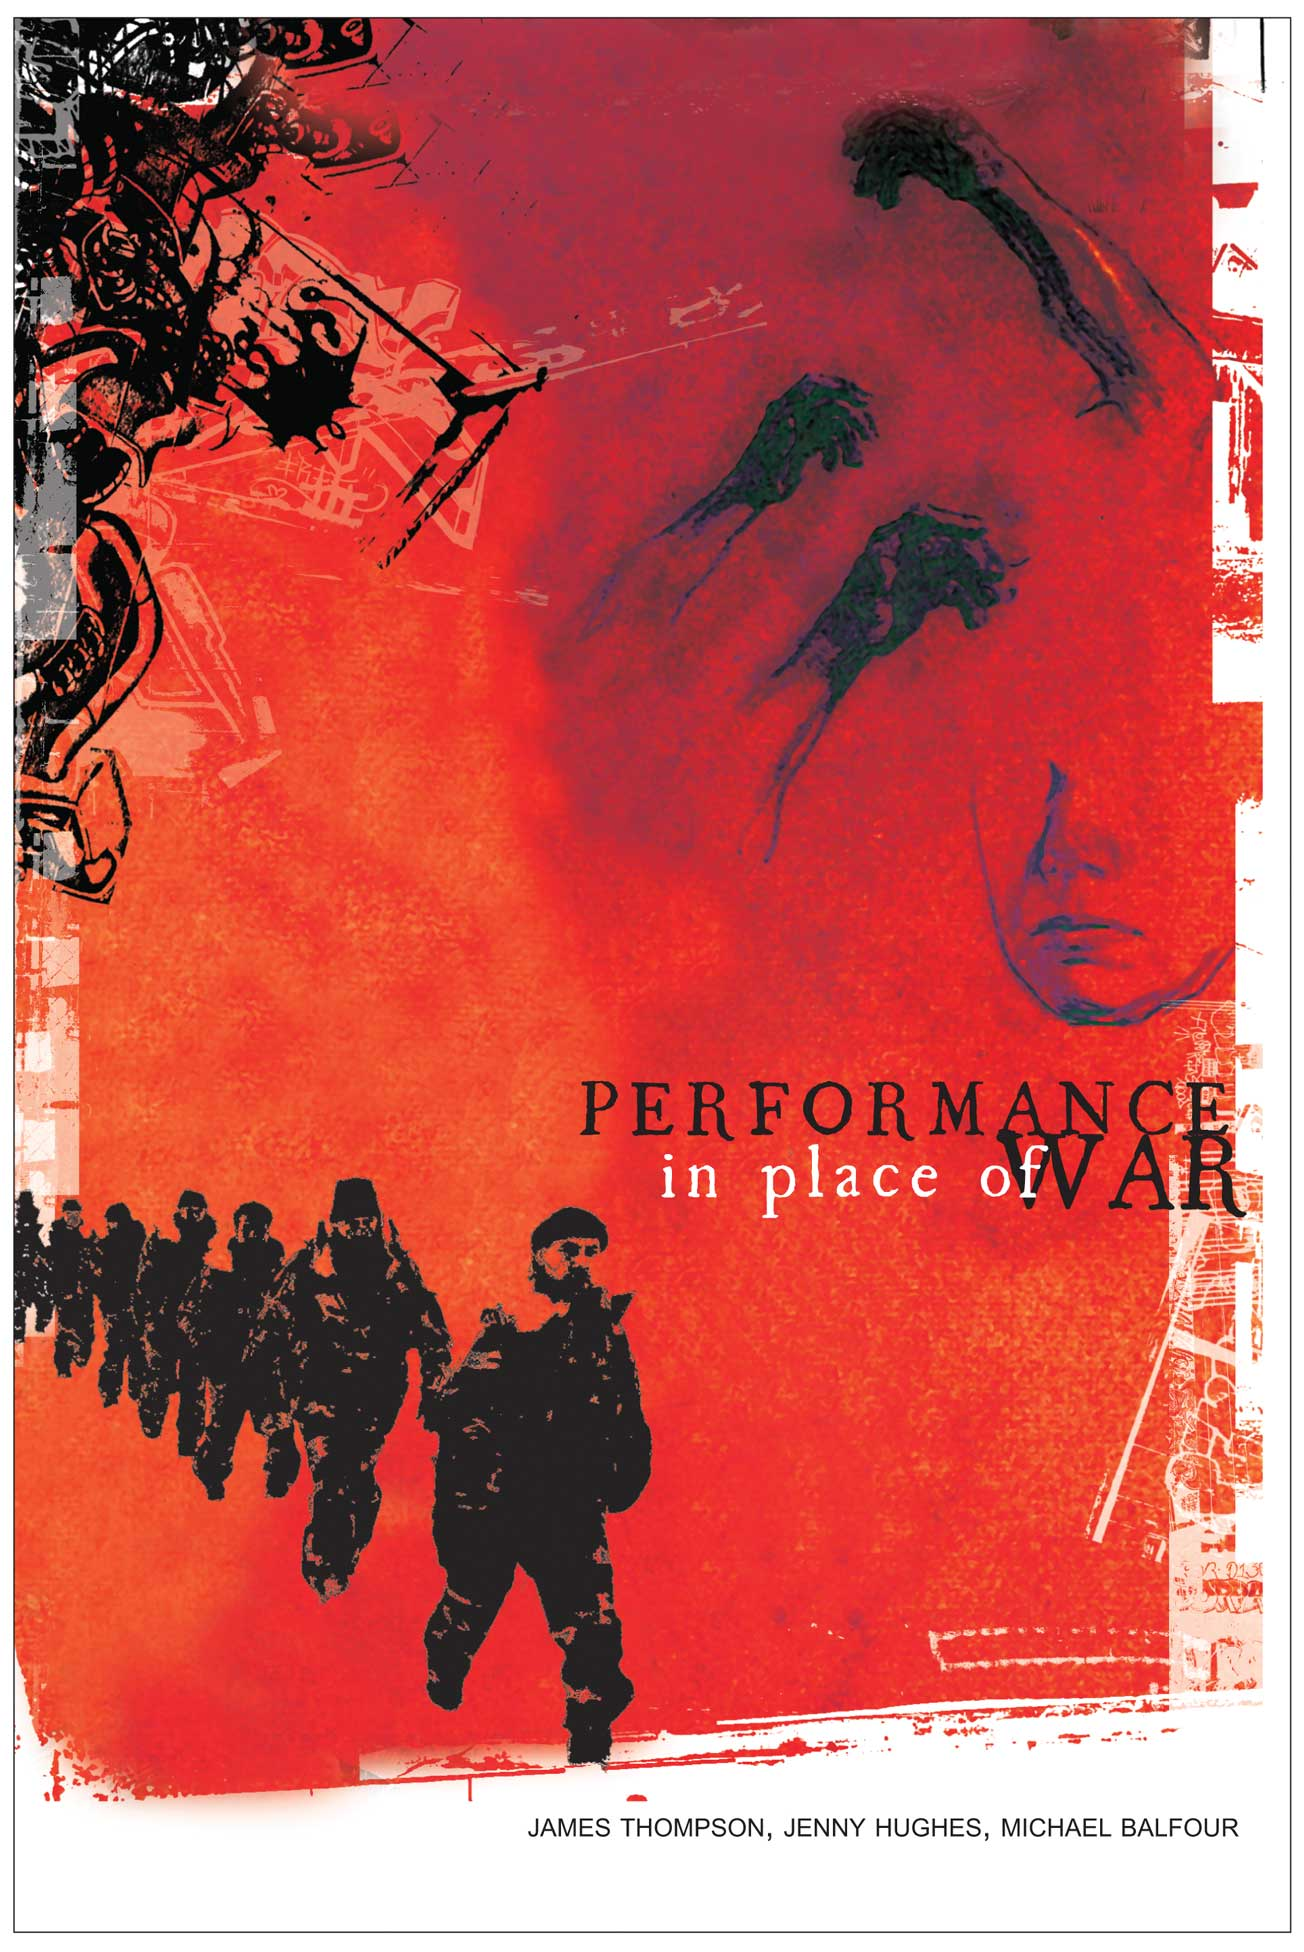 Performance in Place of War by James Thompson, Jenny Hughes and Michael Balfour    Seagull Books